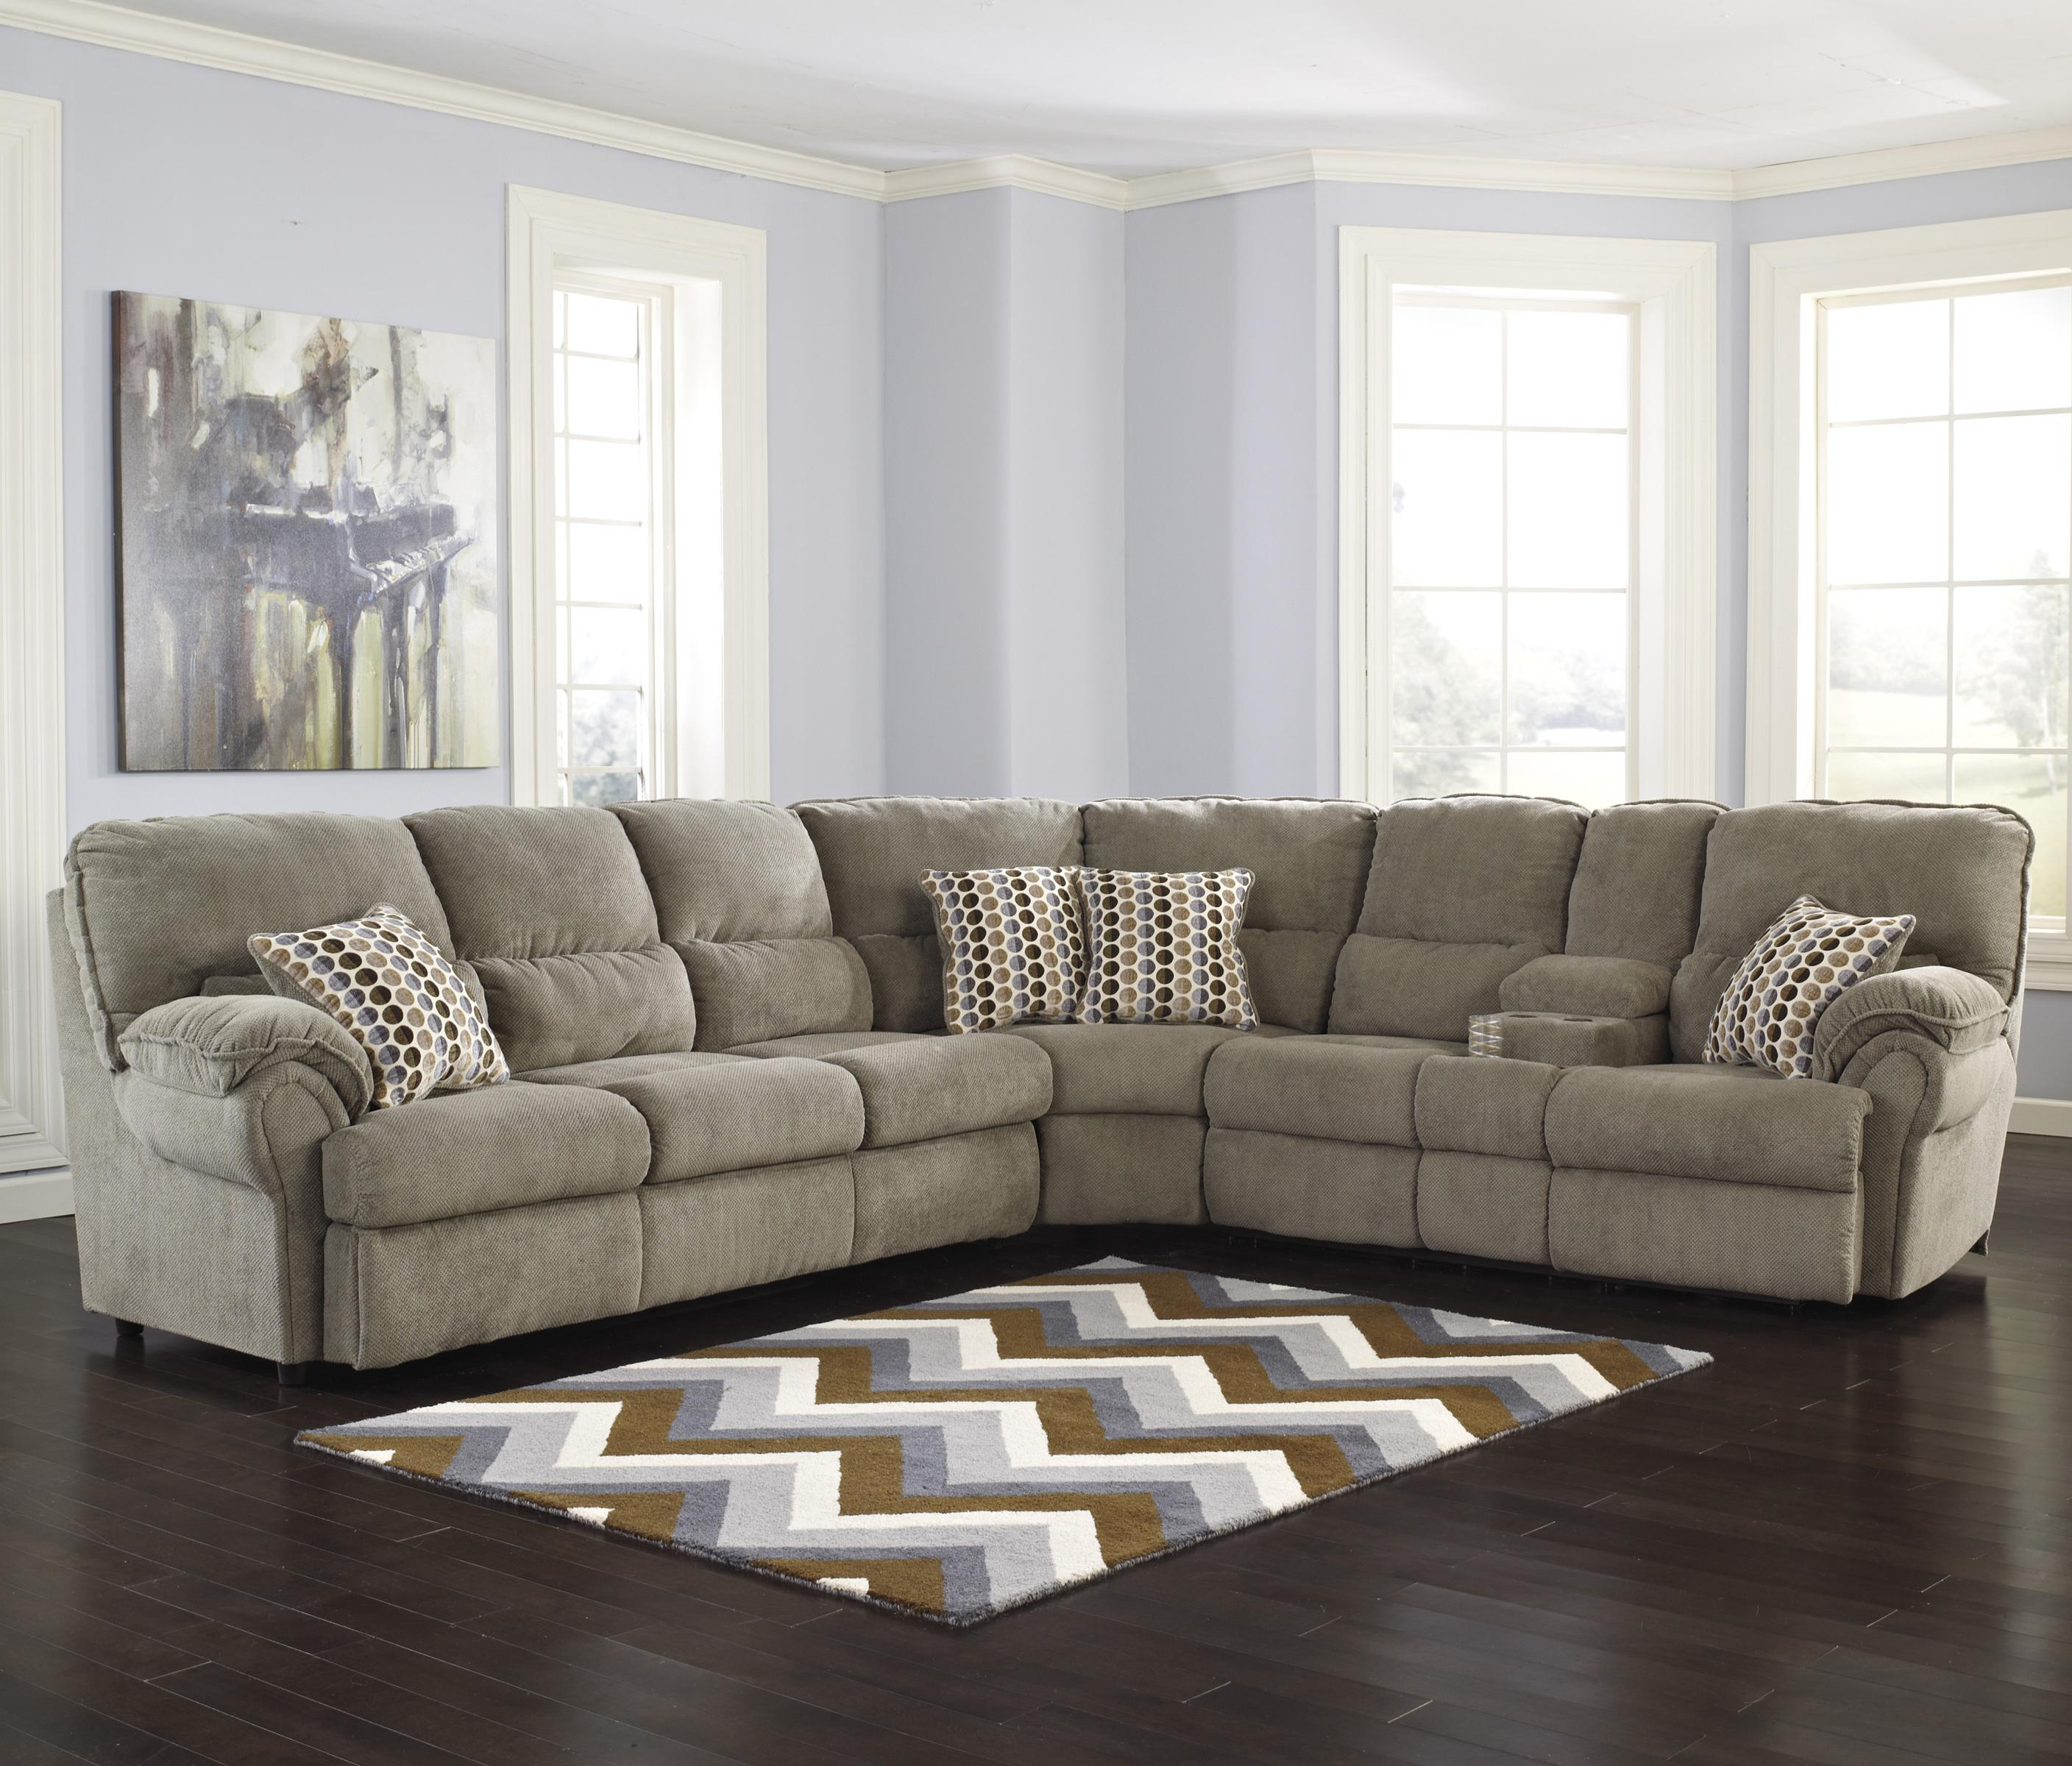 100 affordable furniture warehouse texarkana sharp dark